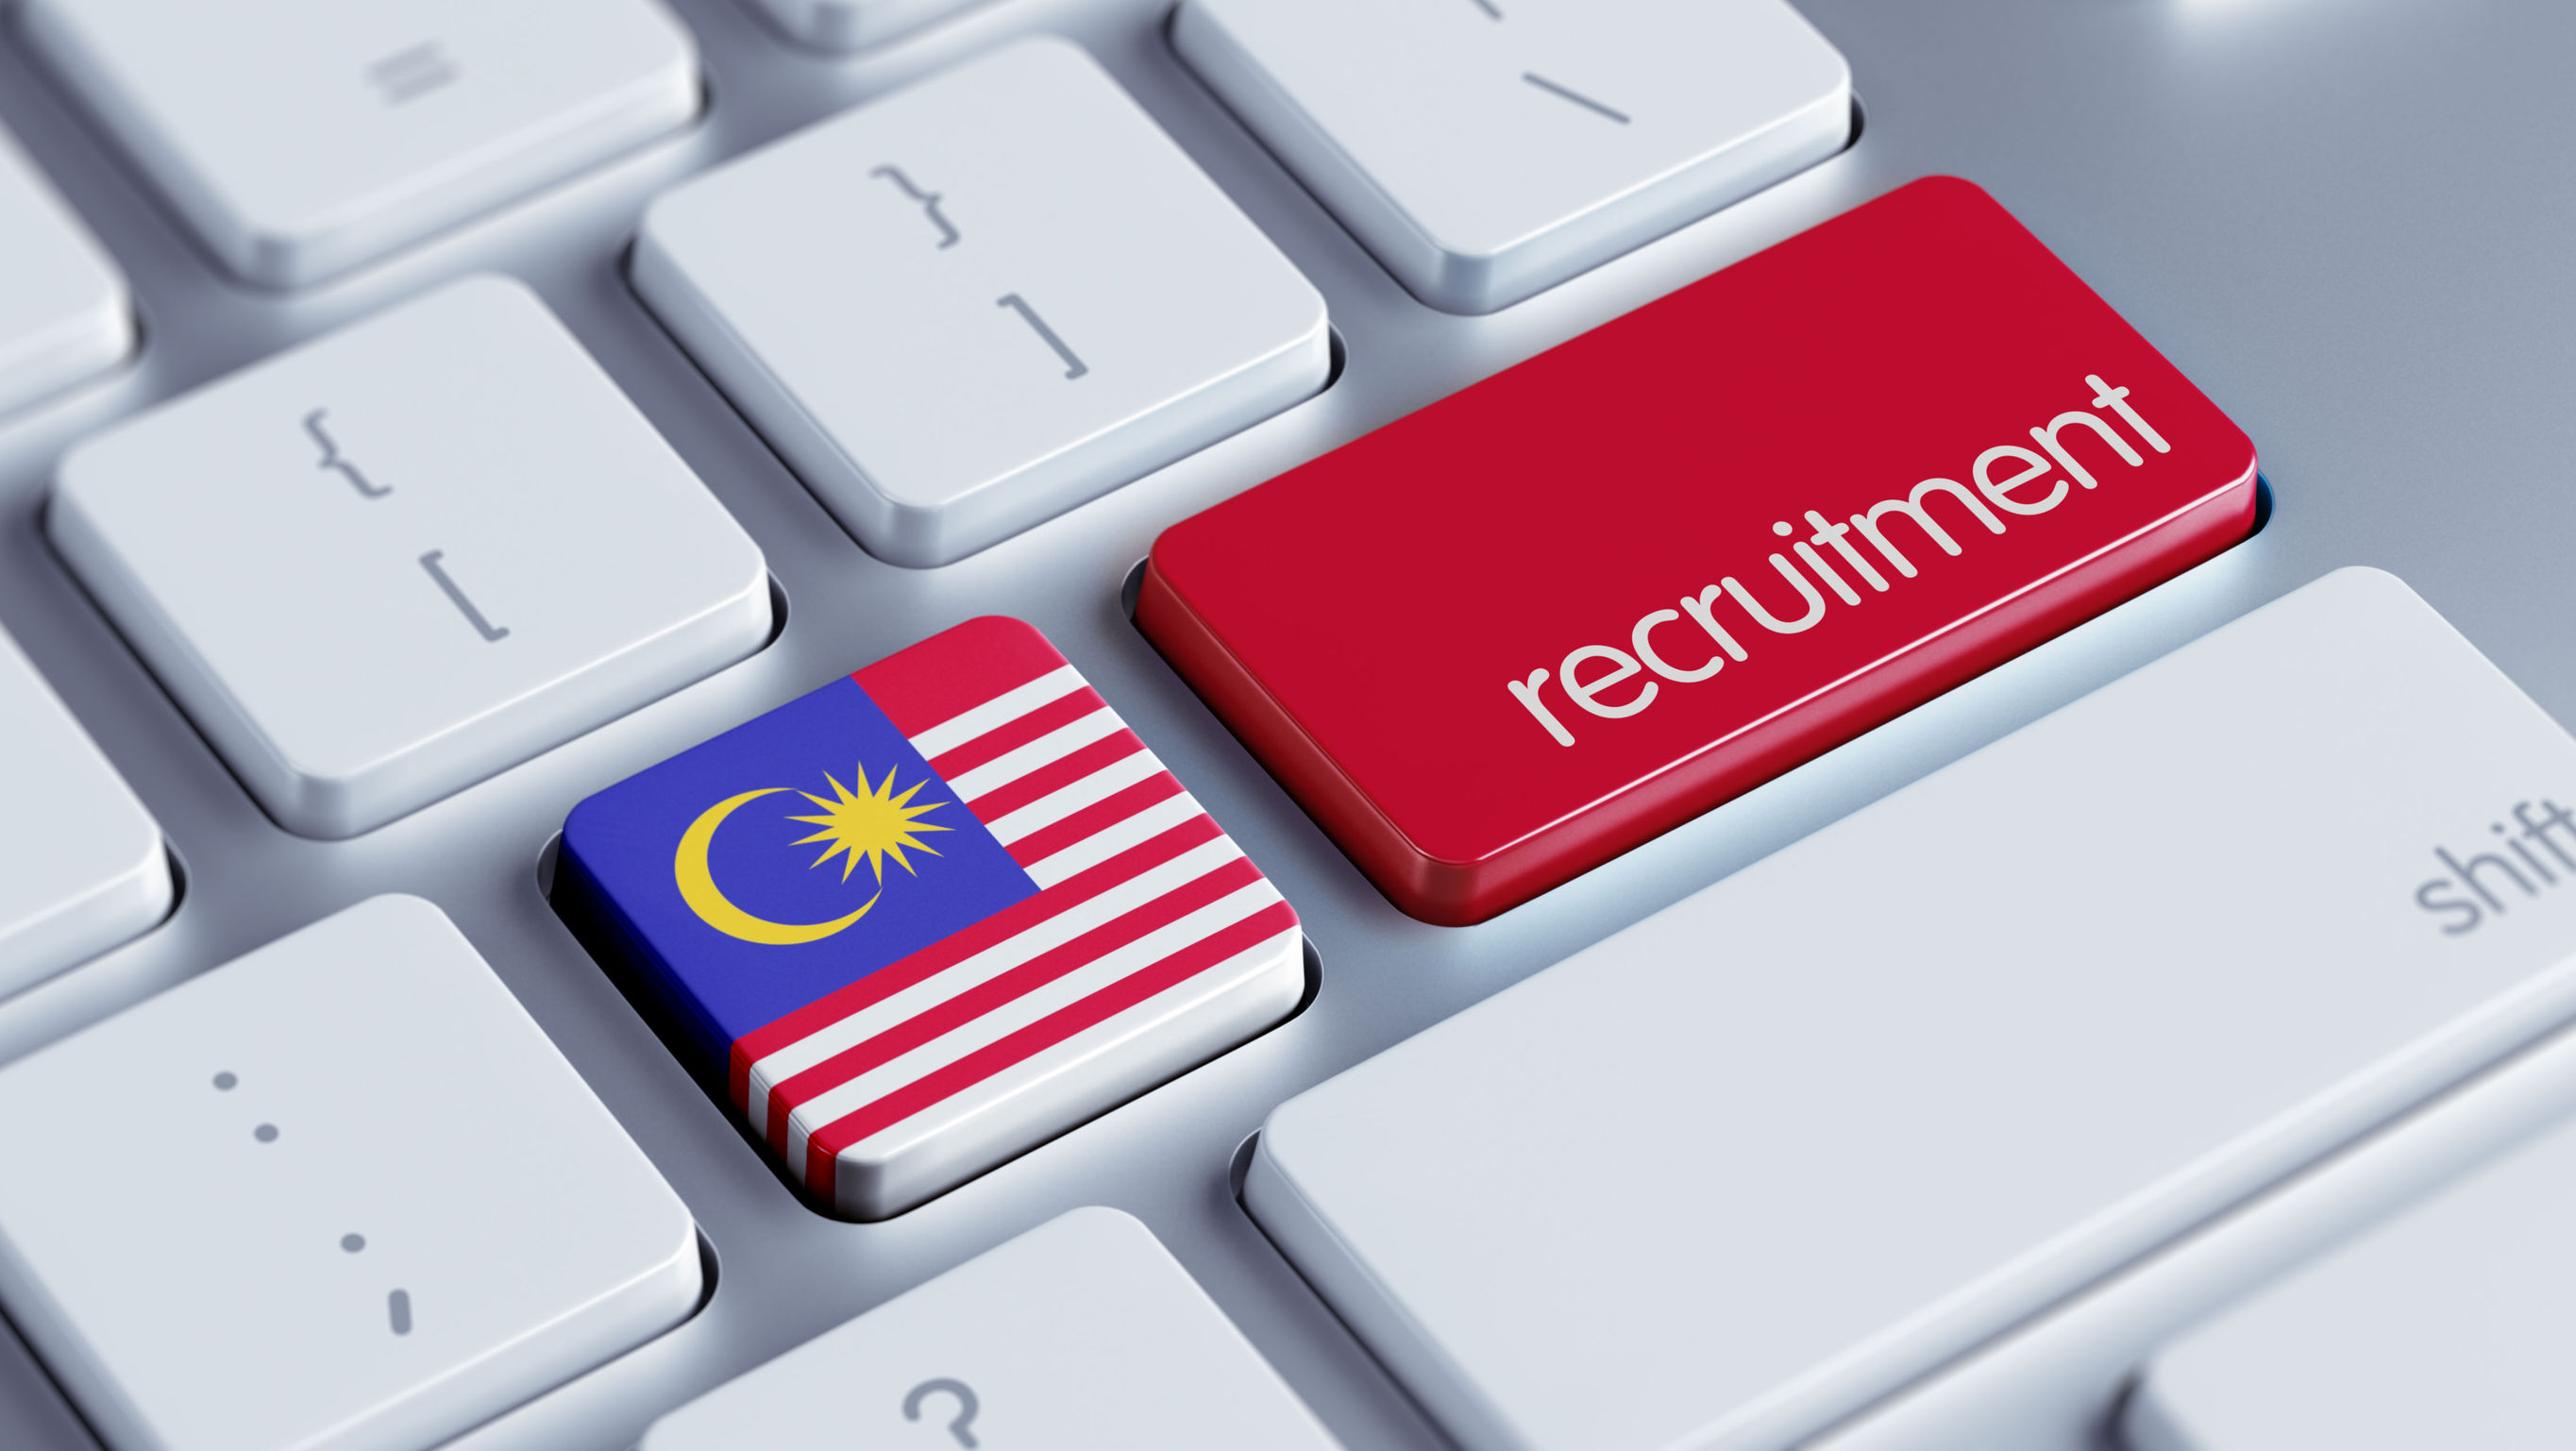 Online Hiring in Malaysia plunges 28% between January 2015 and 2016